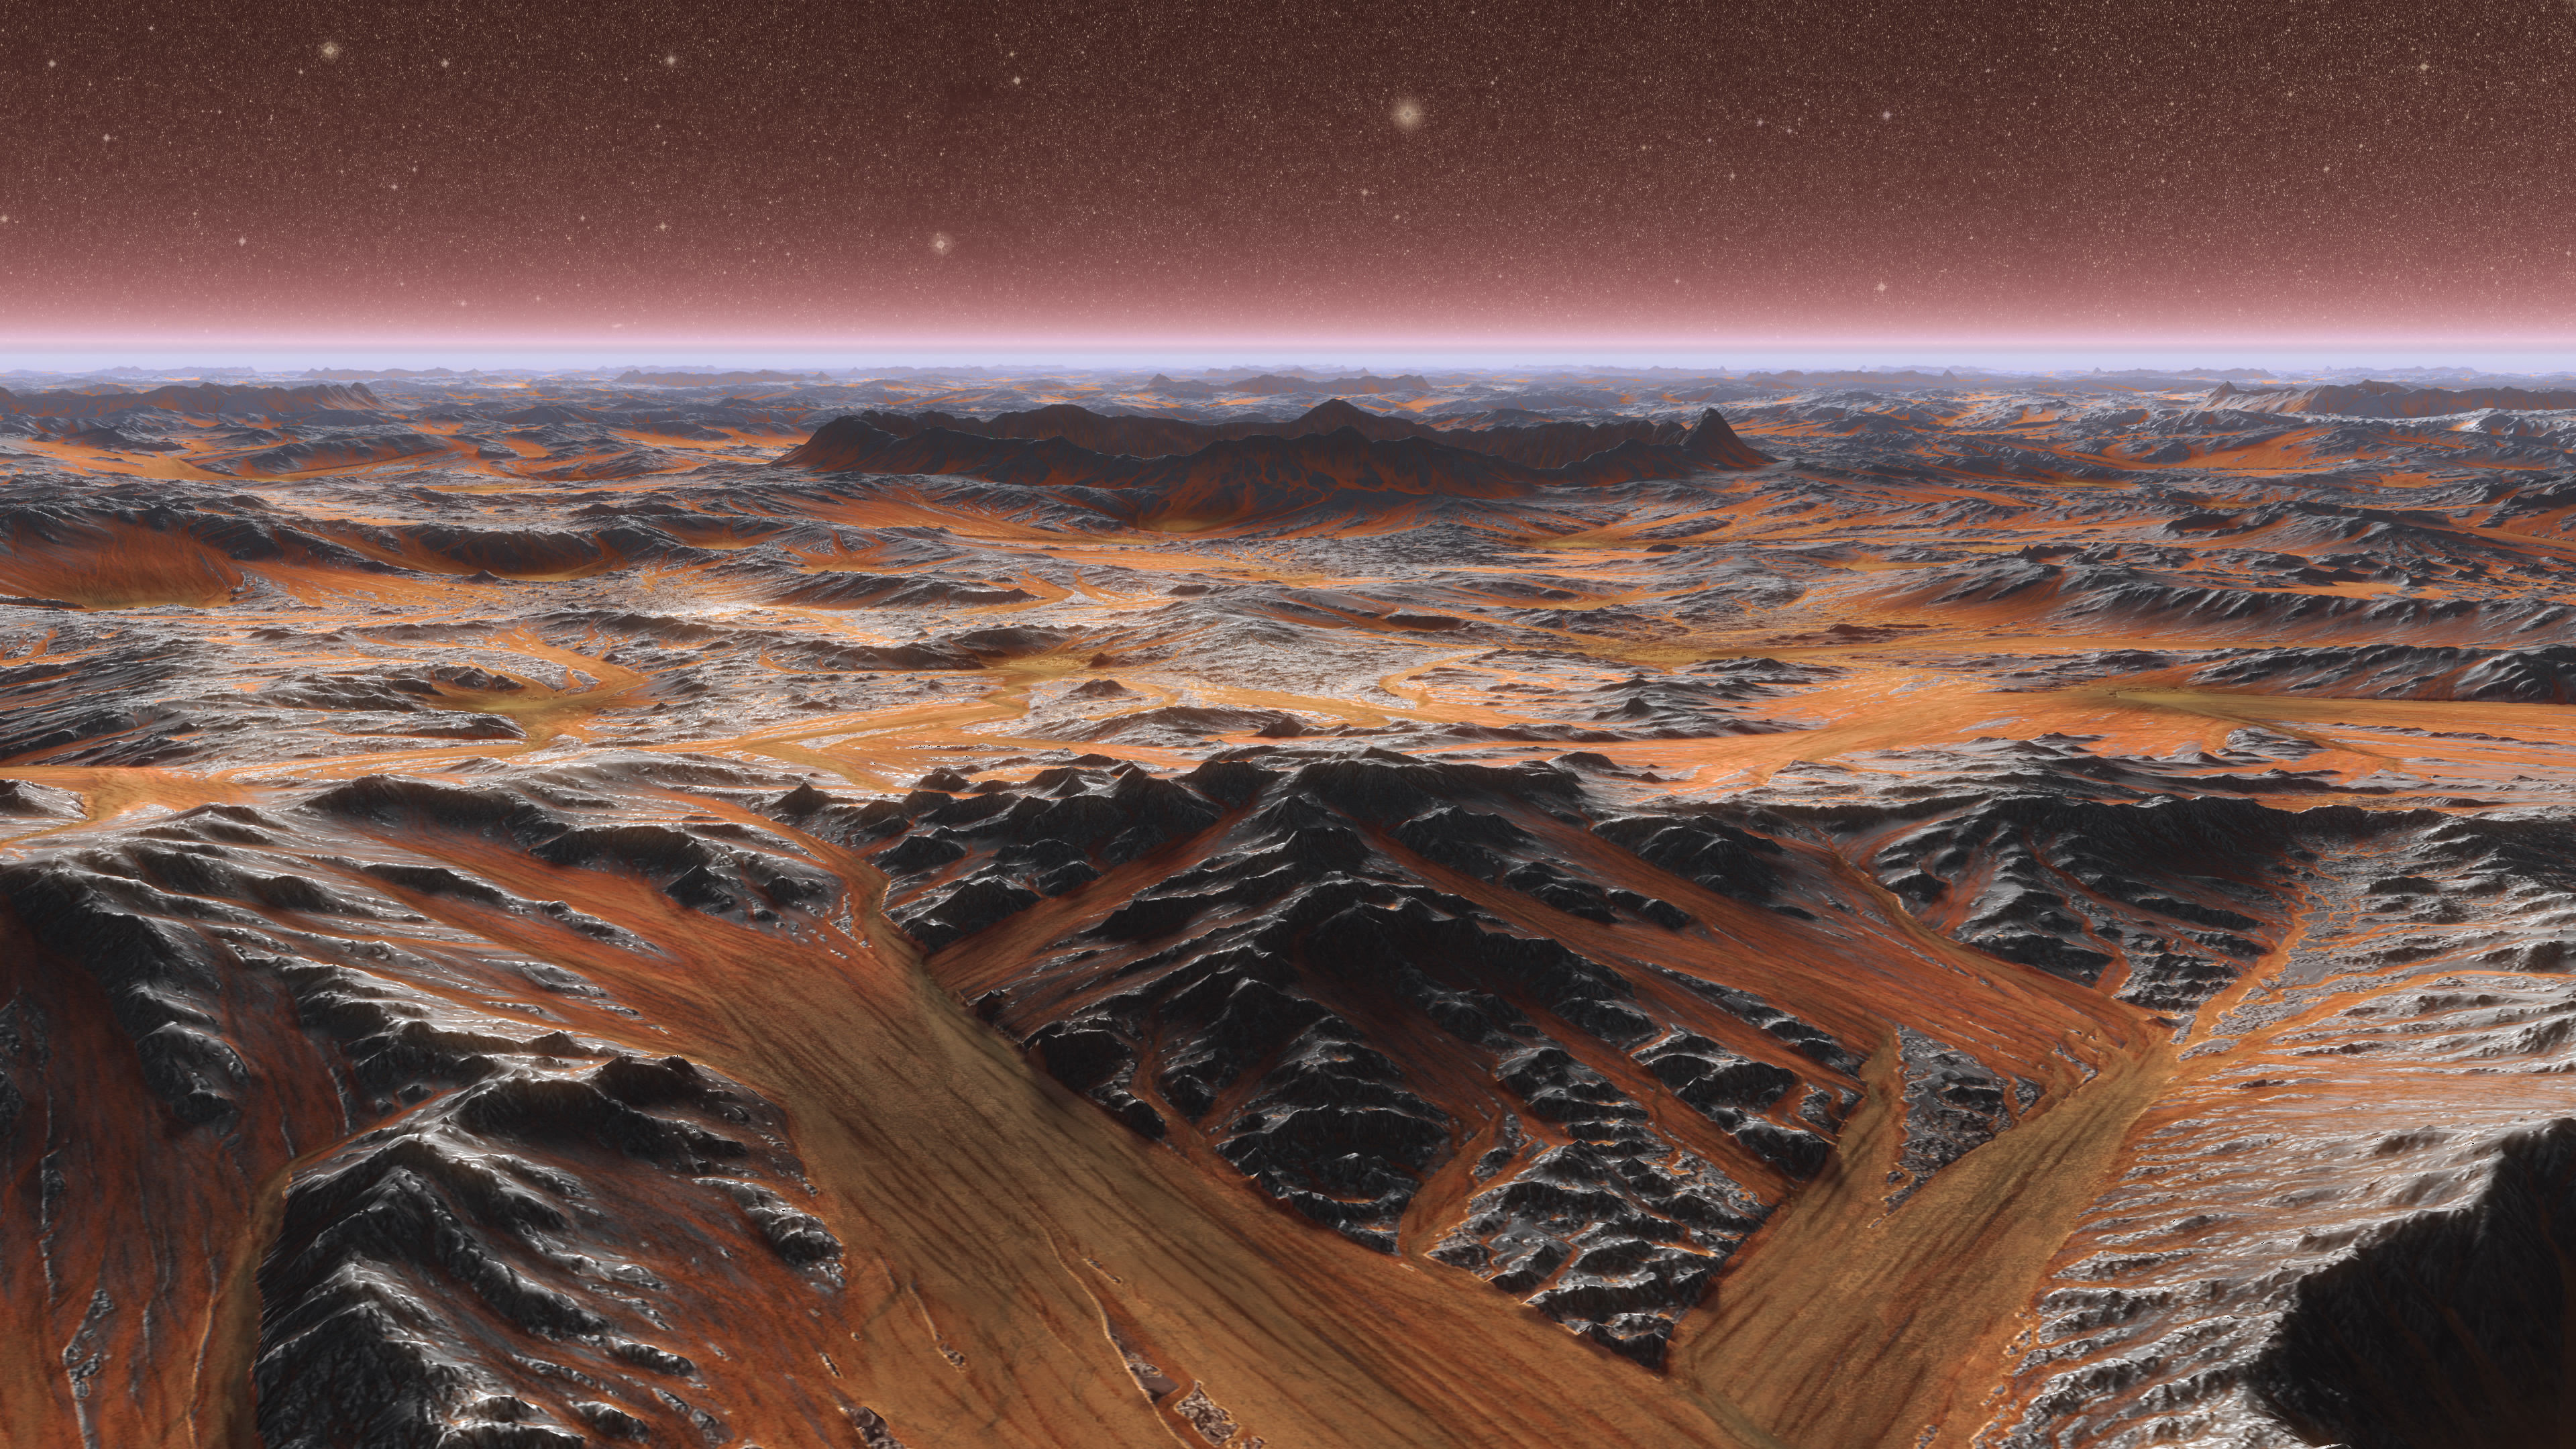 Mars Plate with crater in center  realistic 3d scene PBR